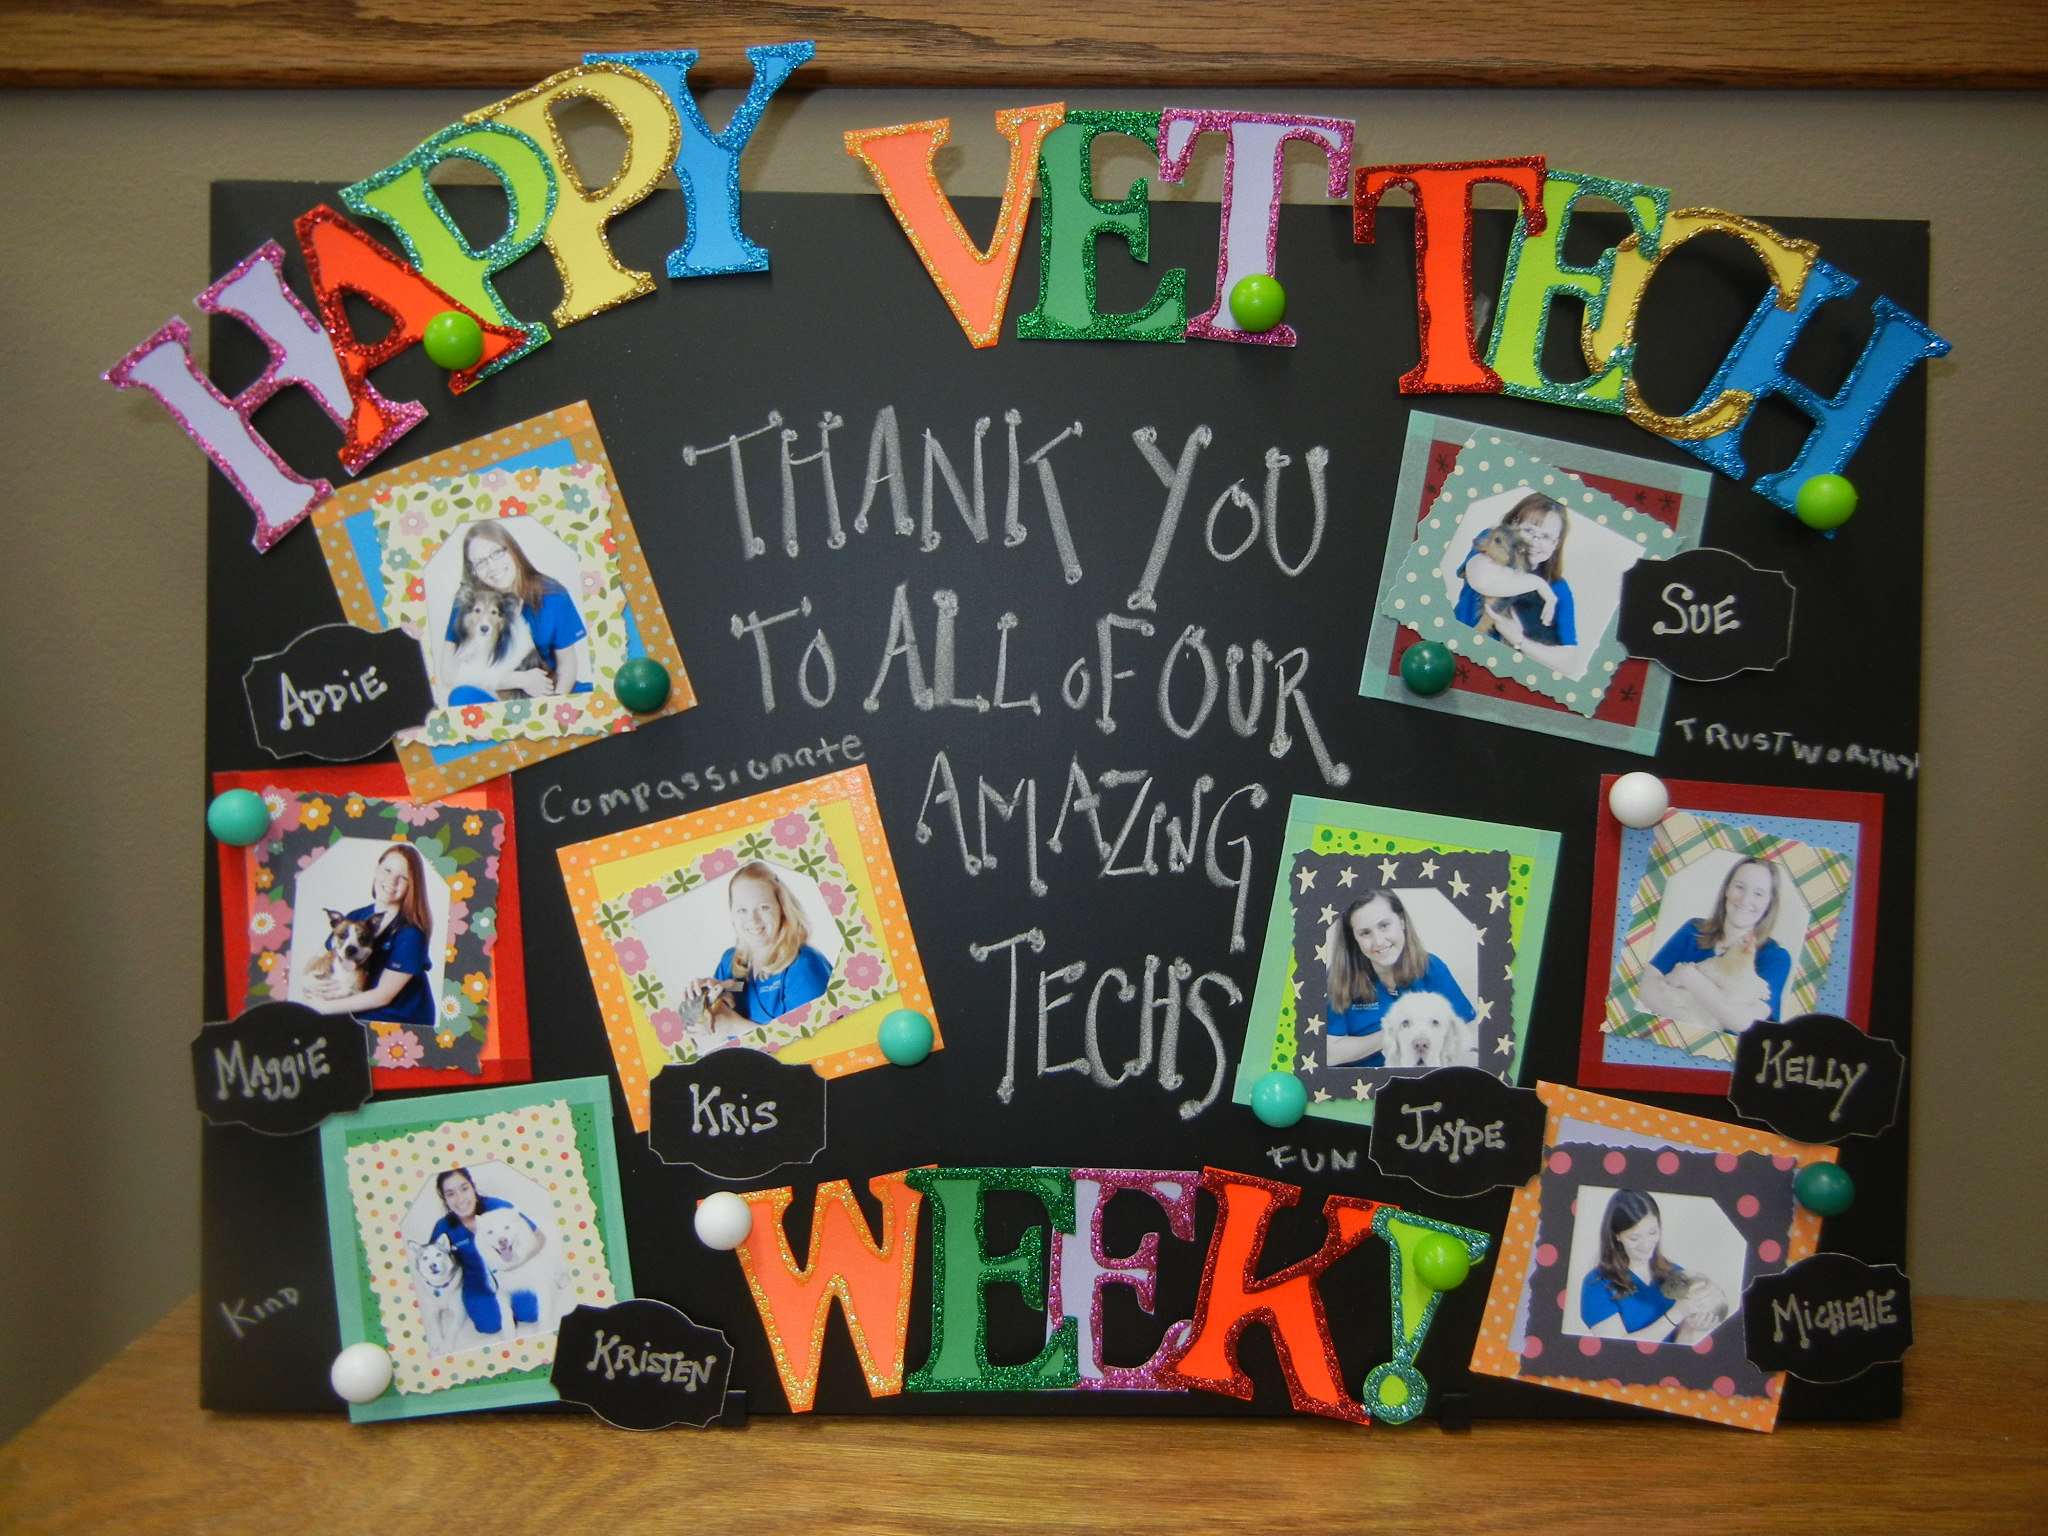 NATIONAL VET TECH WEEK!  THANKS TO OUR GREAT TECHS!